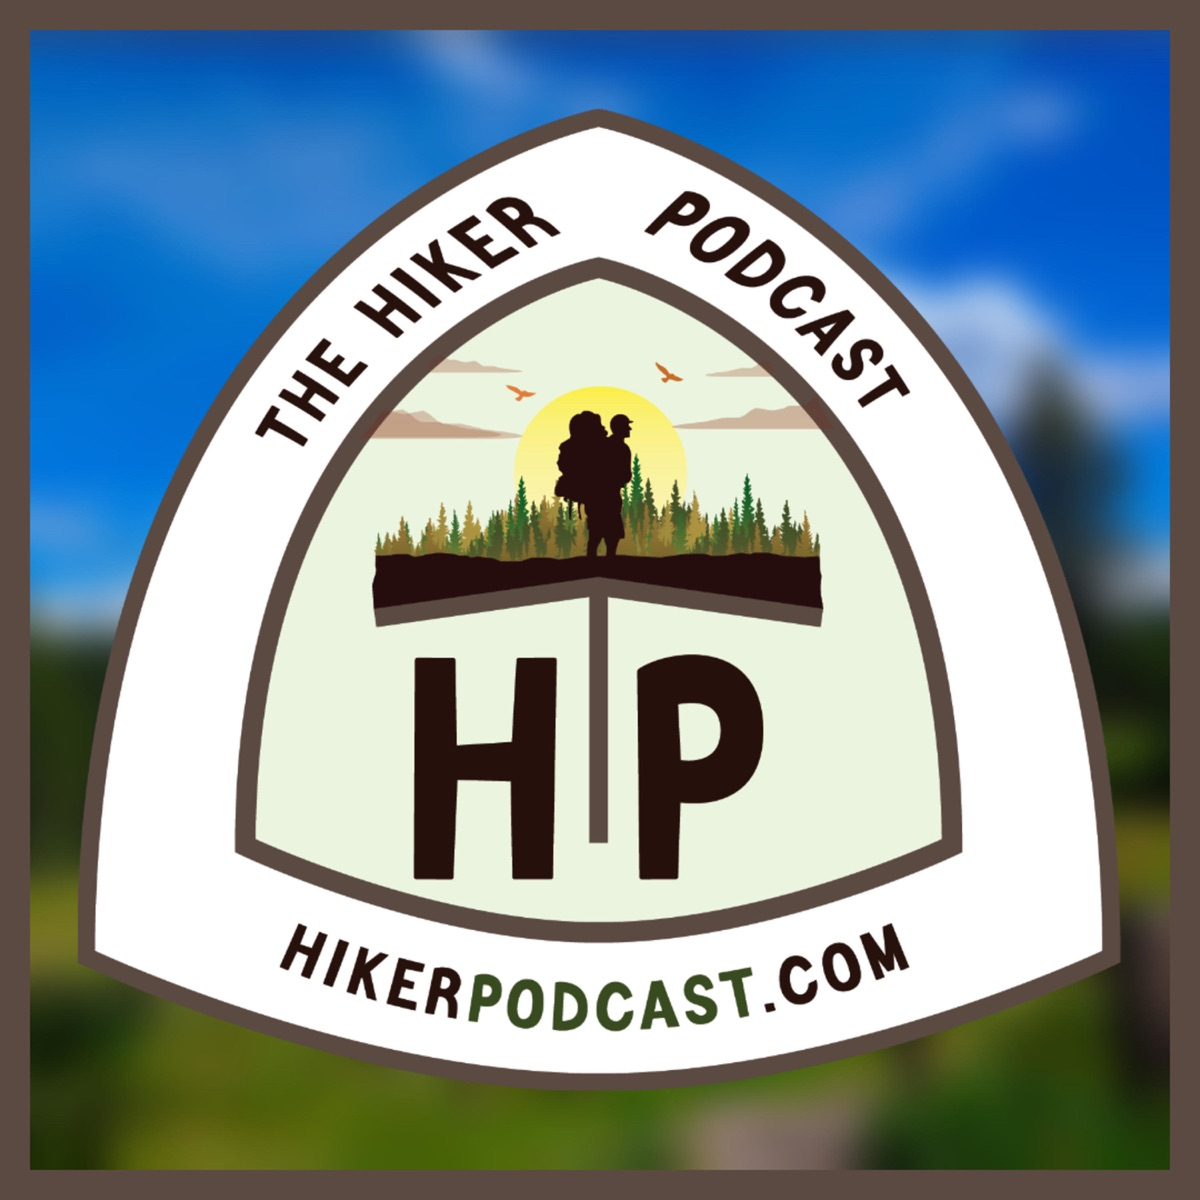 The Hiker Podcast | Day Hiking, Backpacking, Thru Hiking